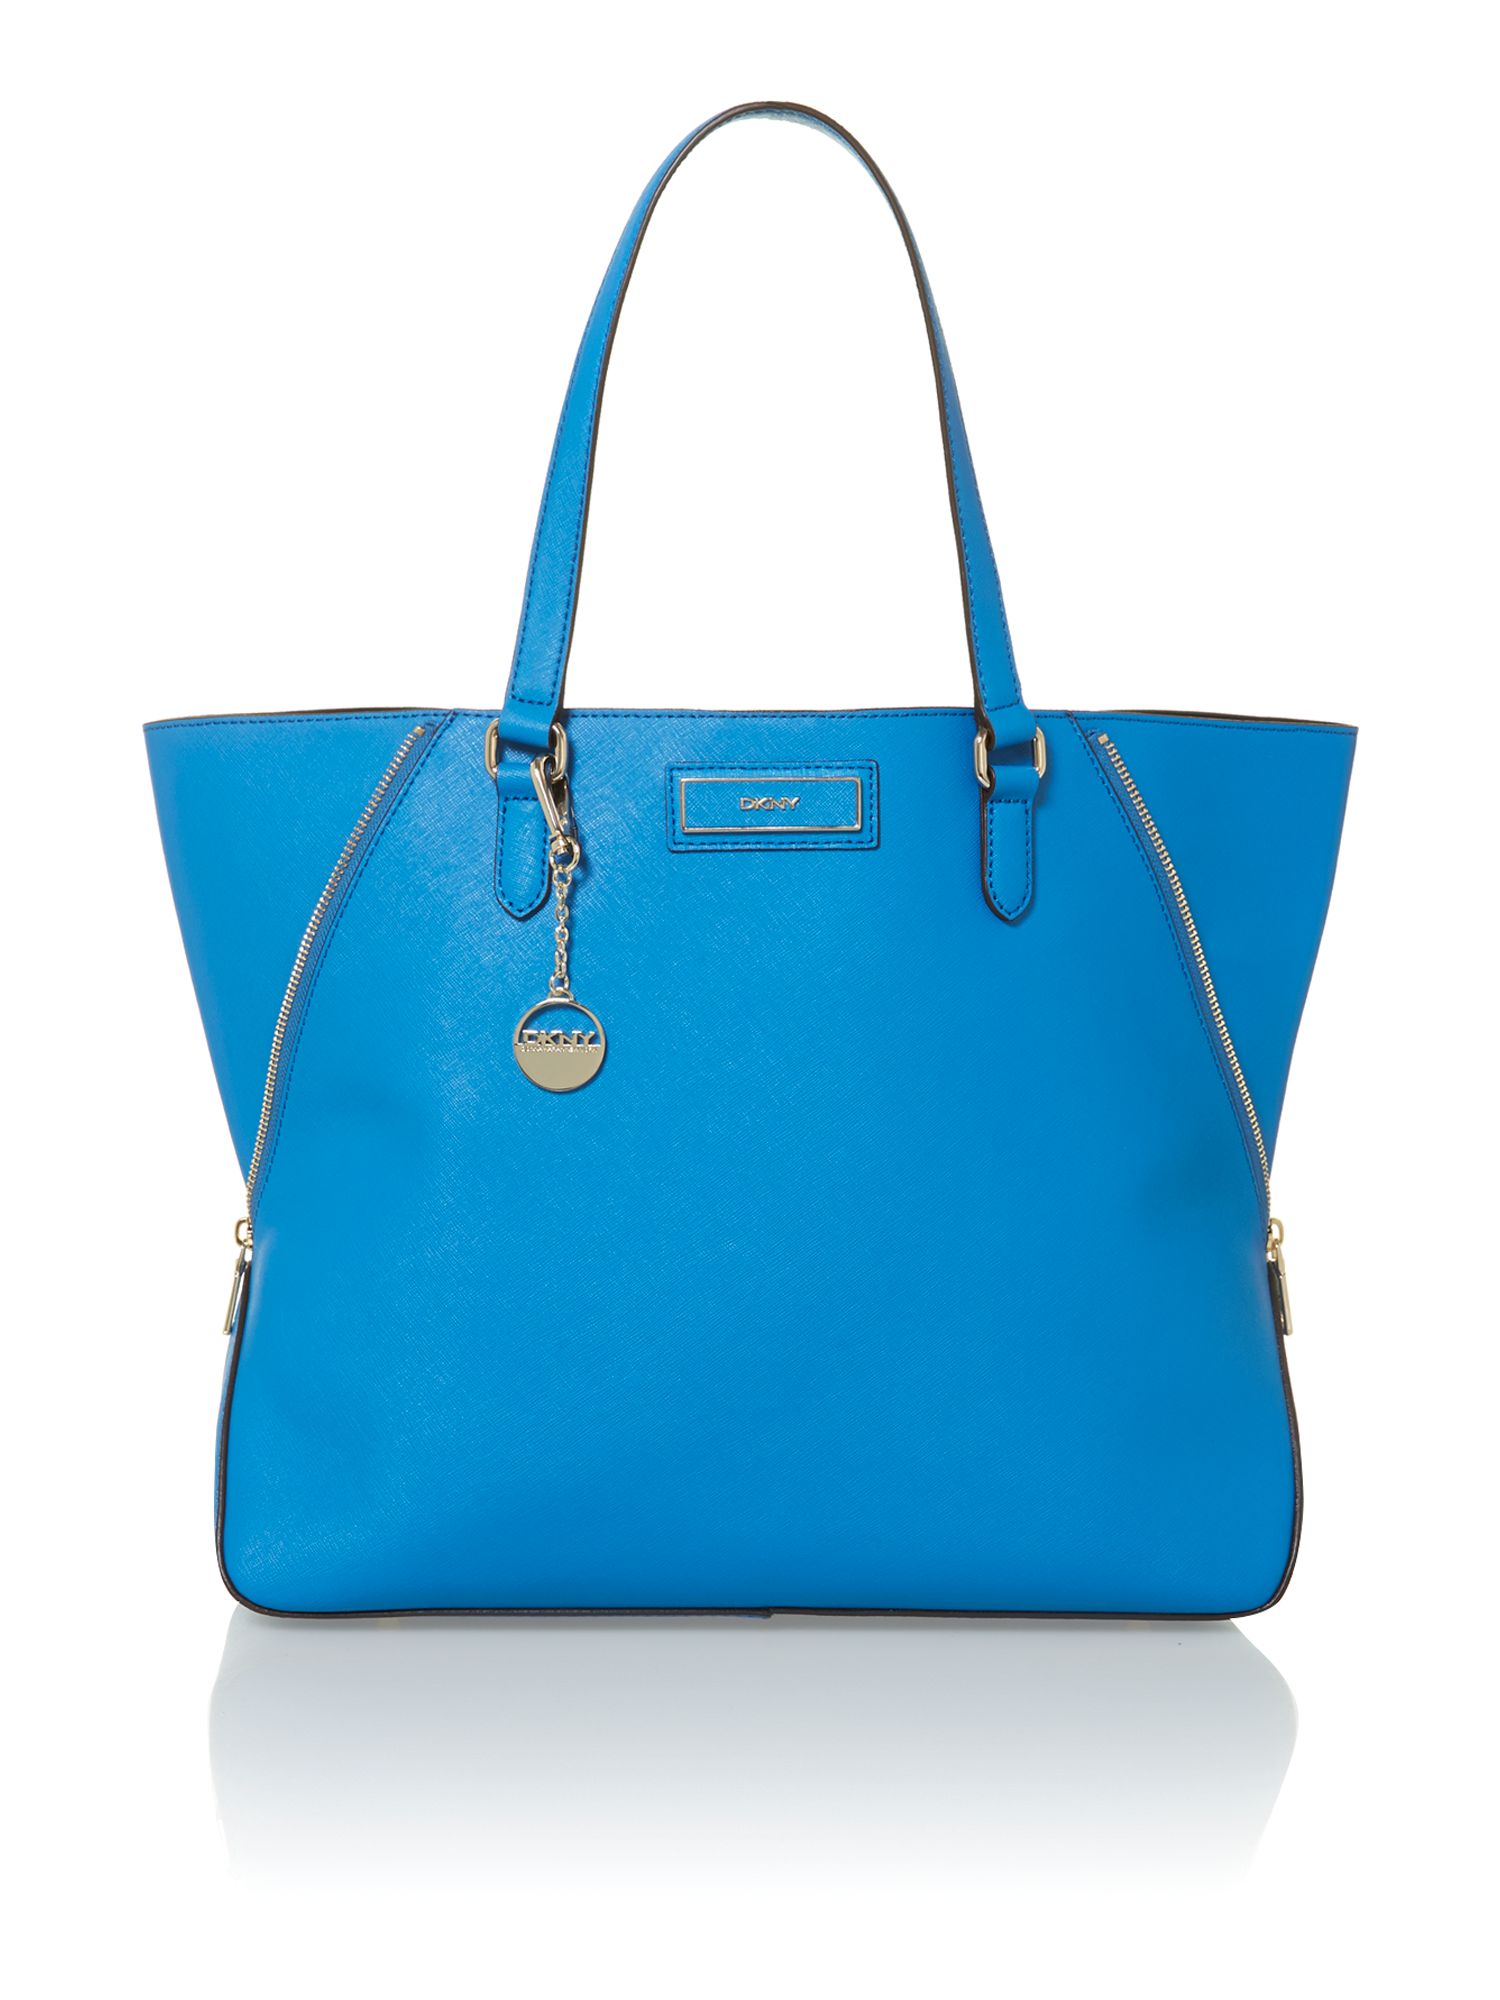 Saffiano blue large tote bag